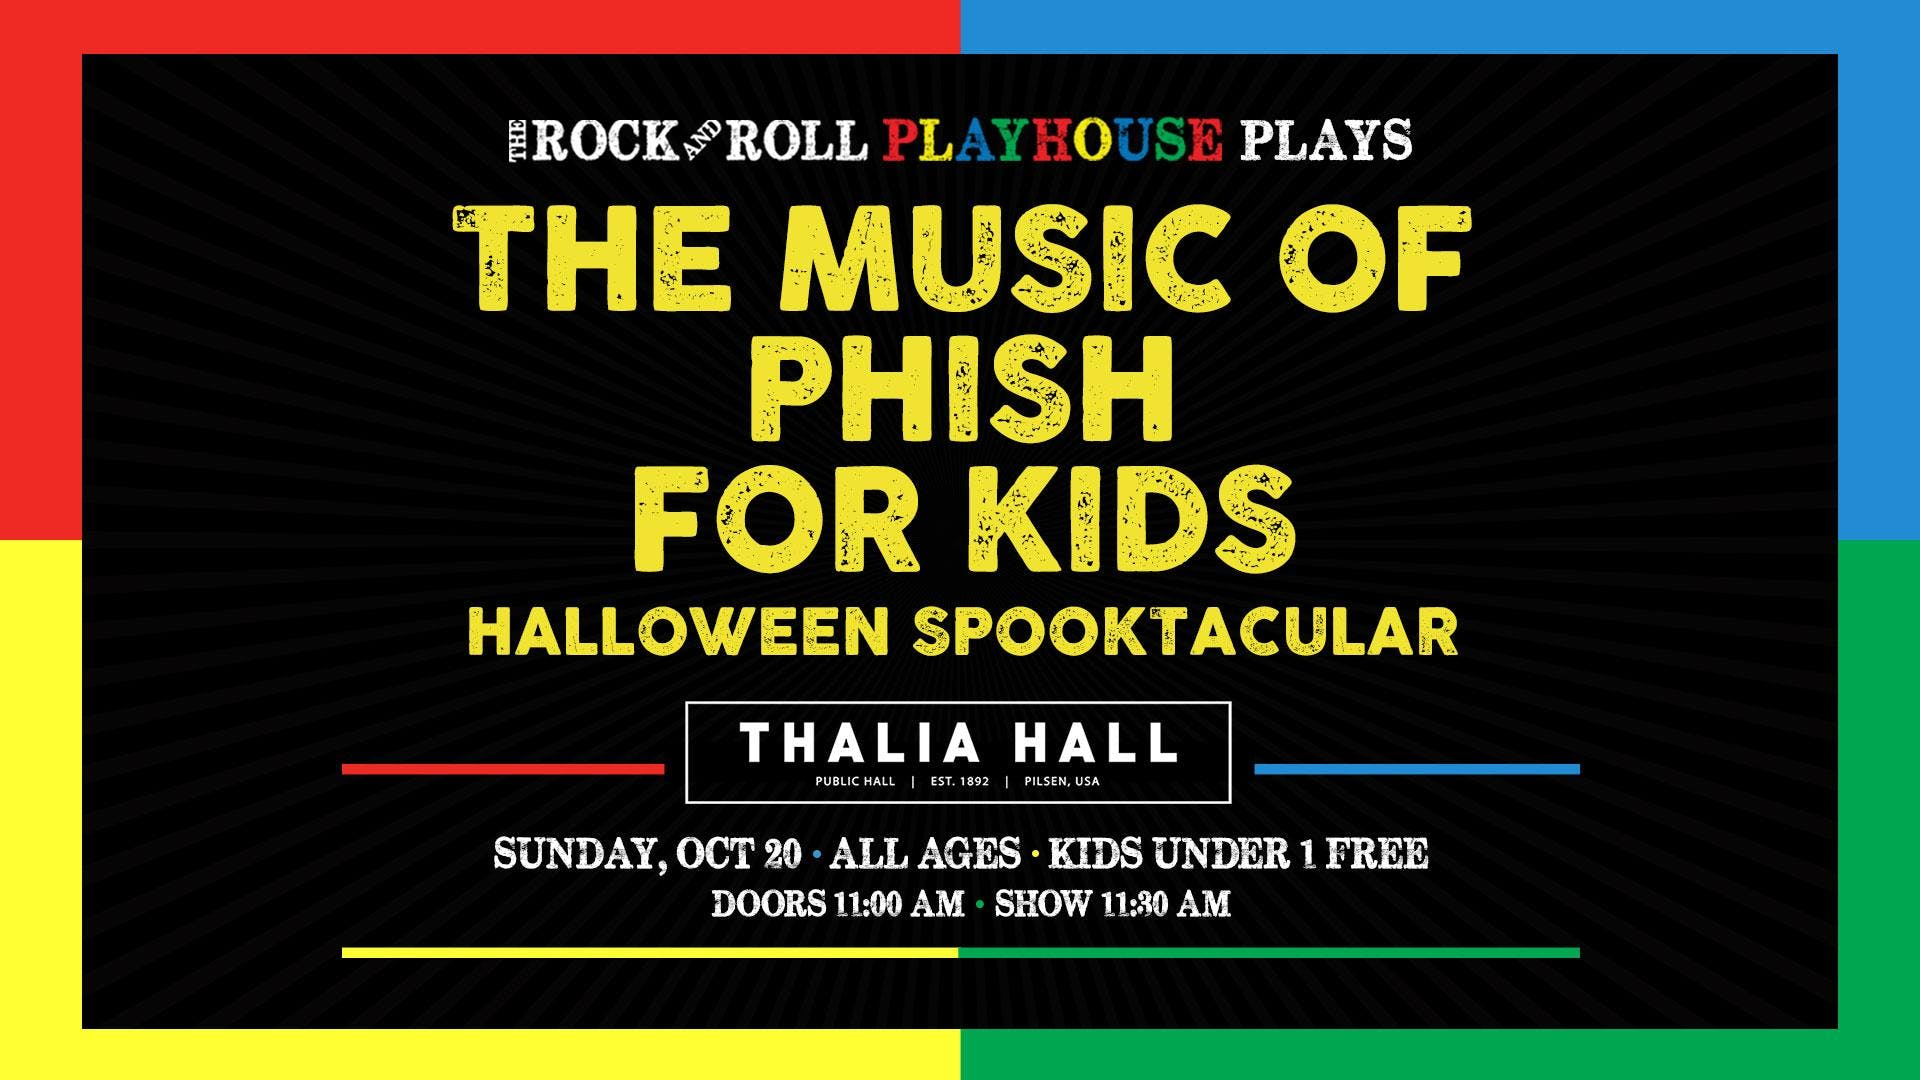 The Rock and Roll Playhouse presents: The Music of Phish for Kids